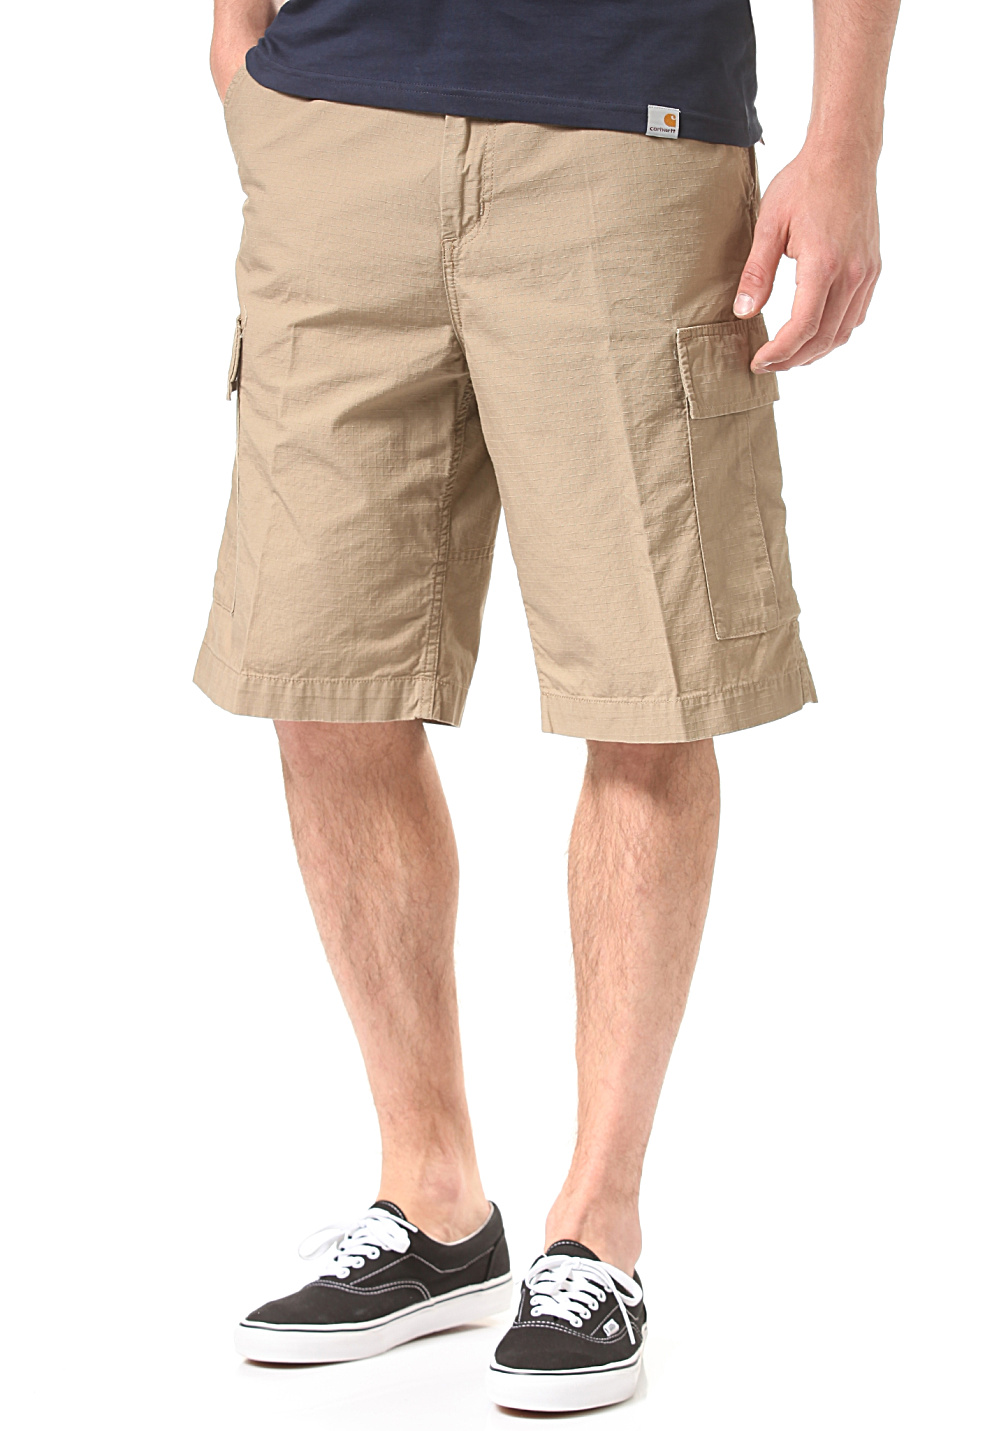 Free shipping BOTH ways on Shorts, Beige, Men, from our vast selection of styles. Fast delivery, and 24/7/ real-person service with a smile. Click or call